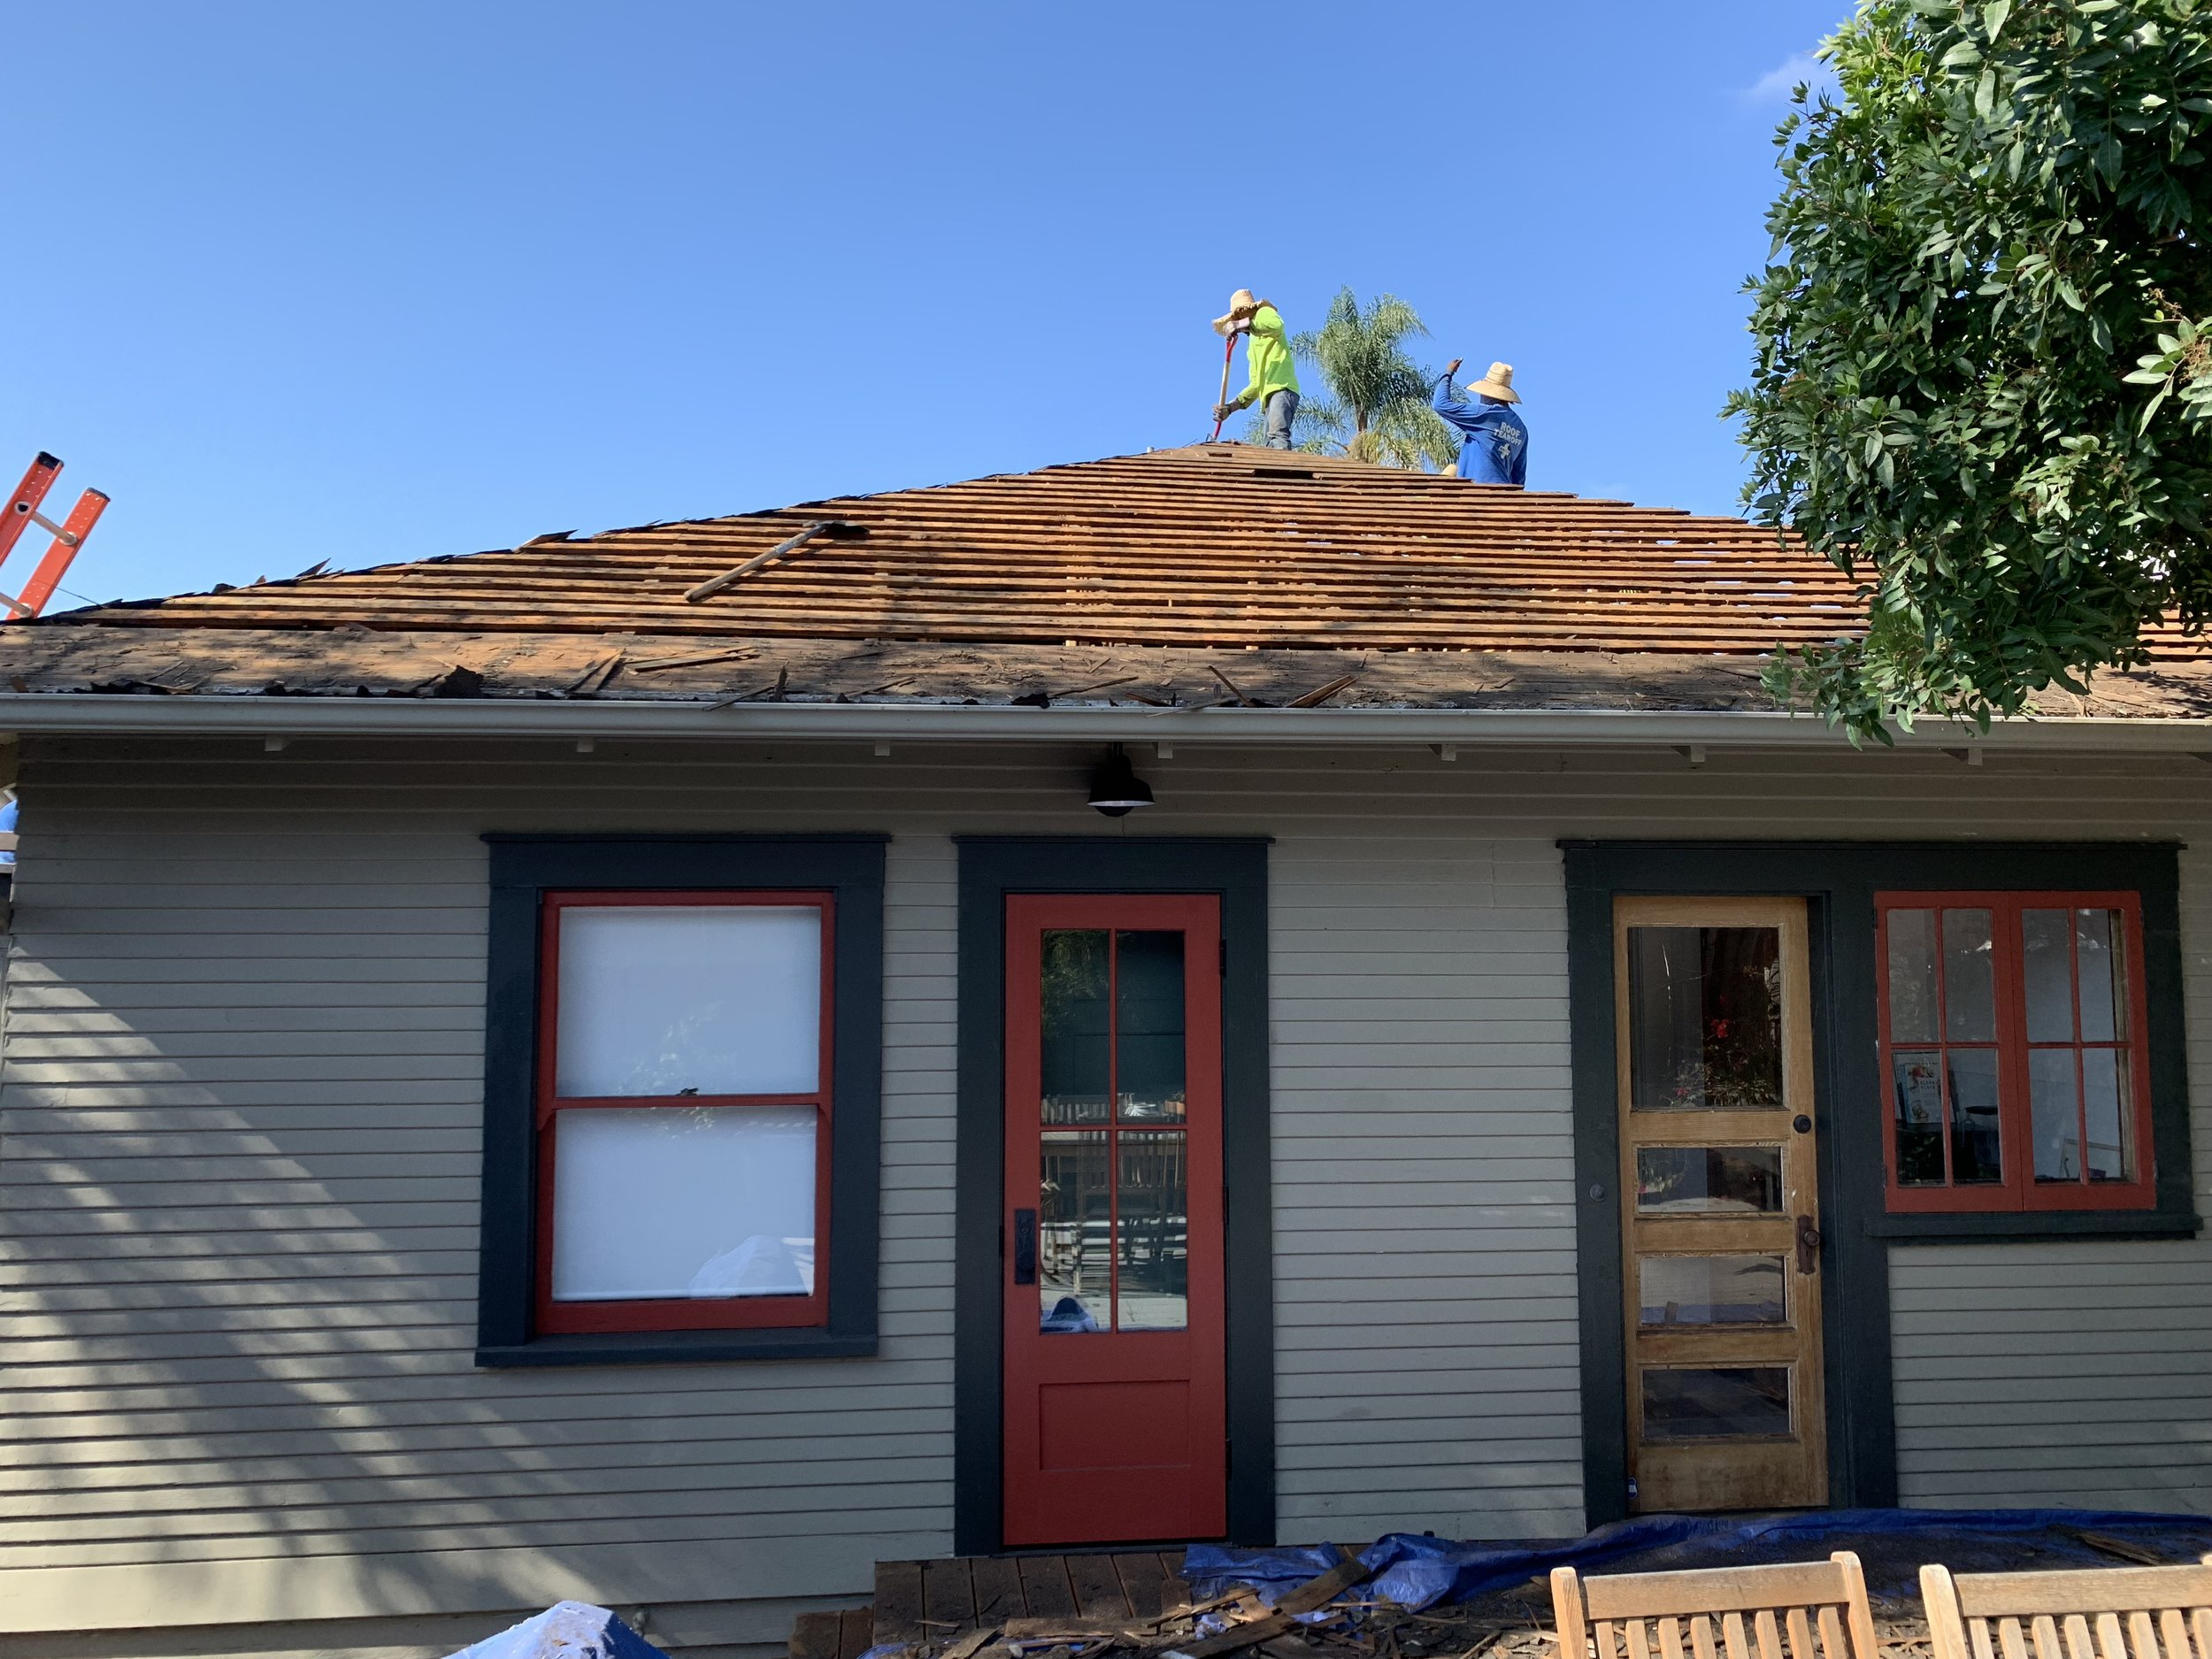 Getting a New Roof Tear Off down to decking Owens Corning Duration Cool Mountainside-0043.jpg